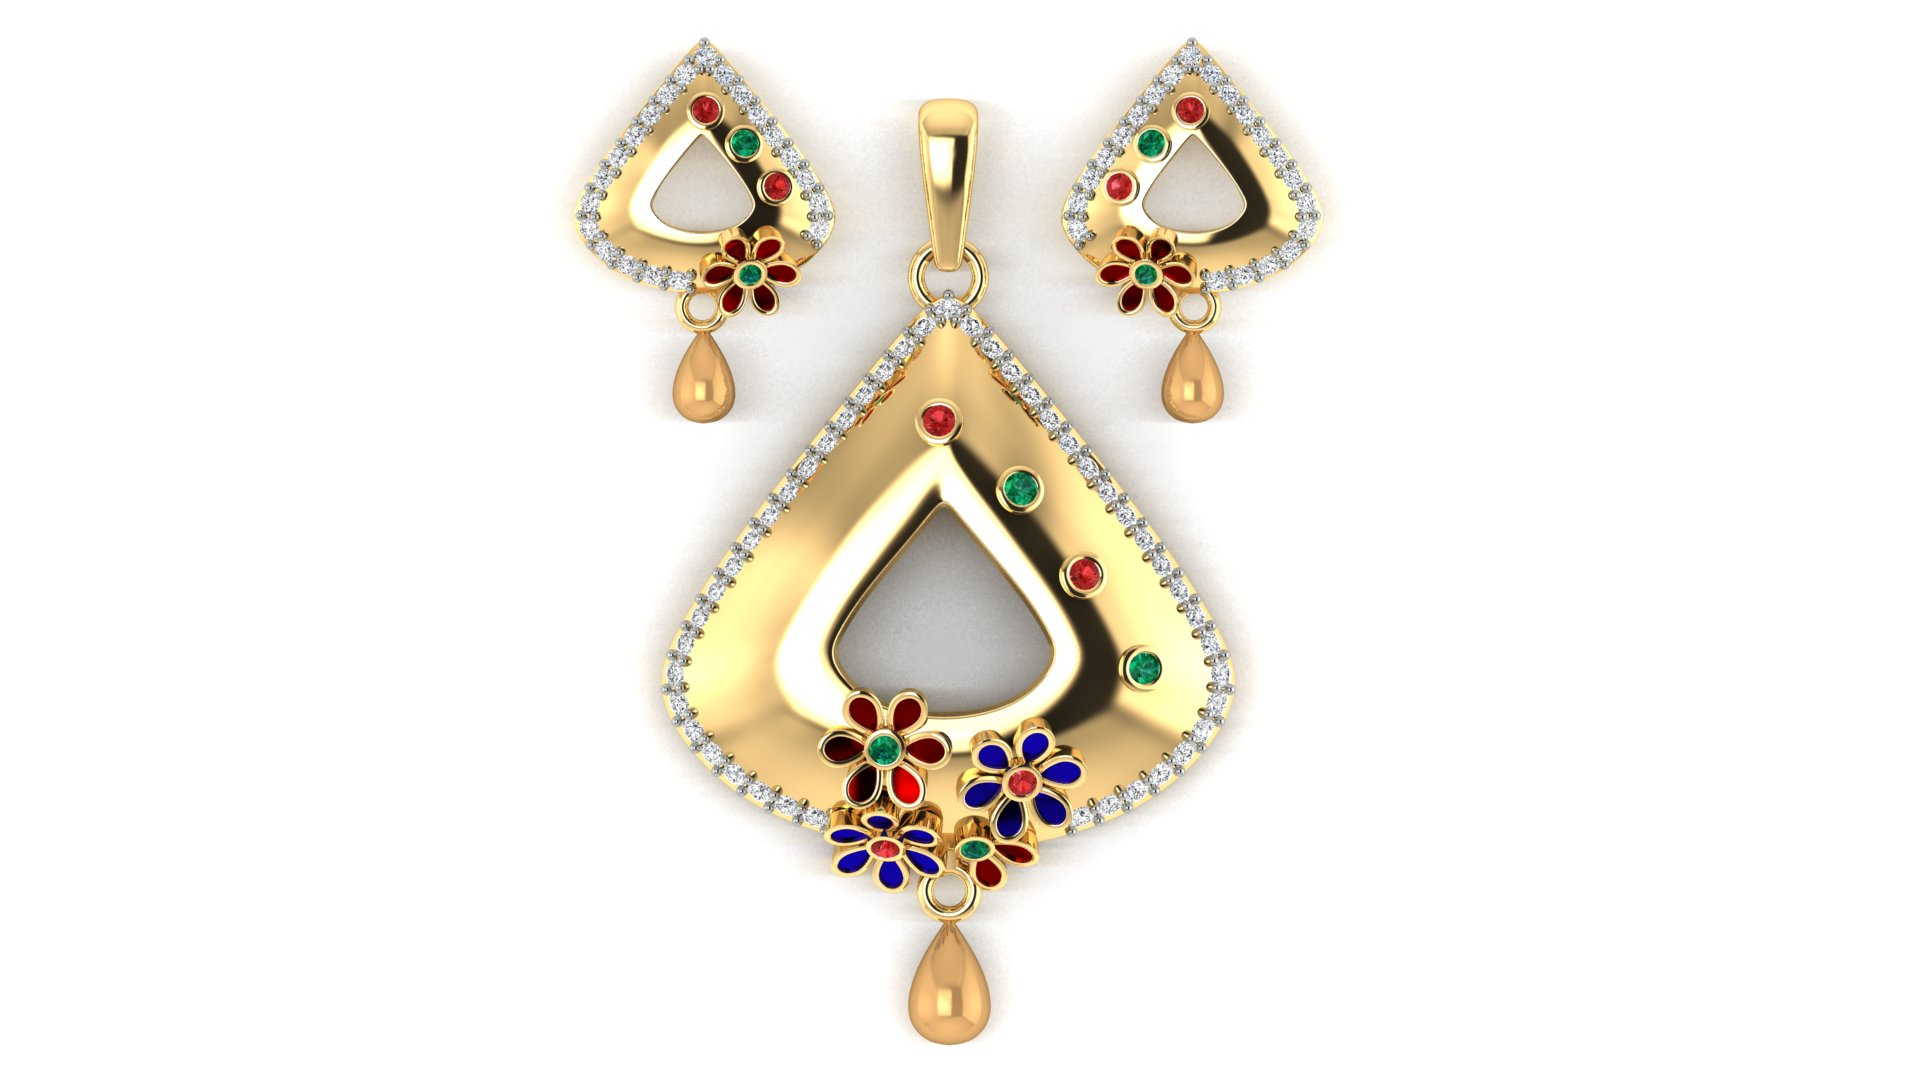 18 Carat Yellow Gold Pendant and Butti with Diamond Border